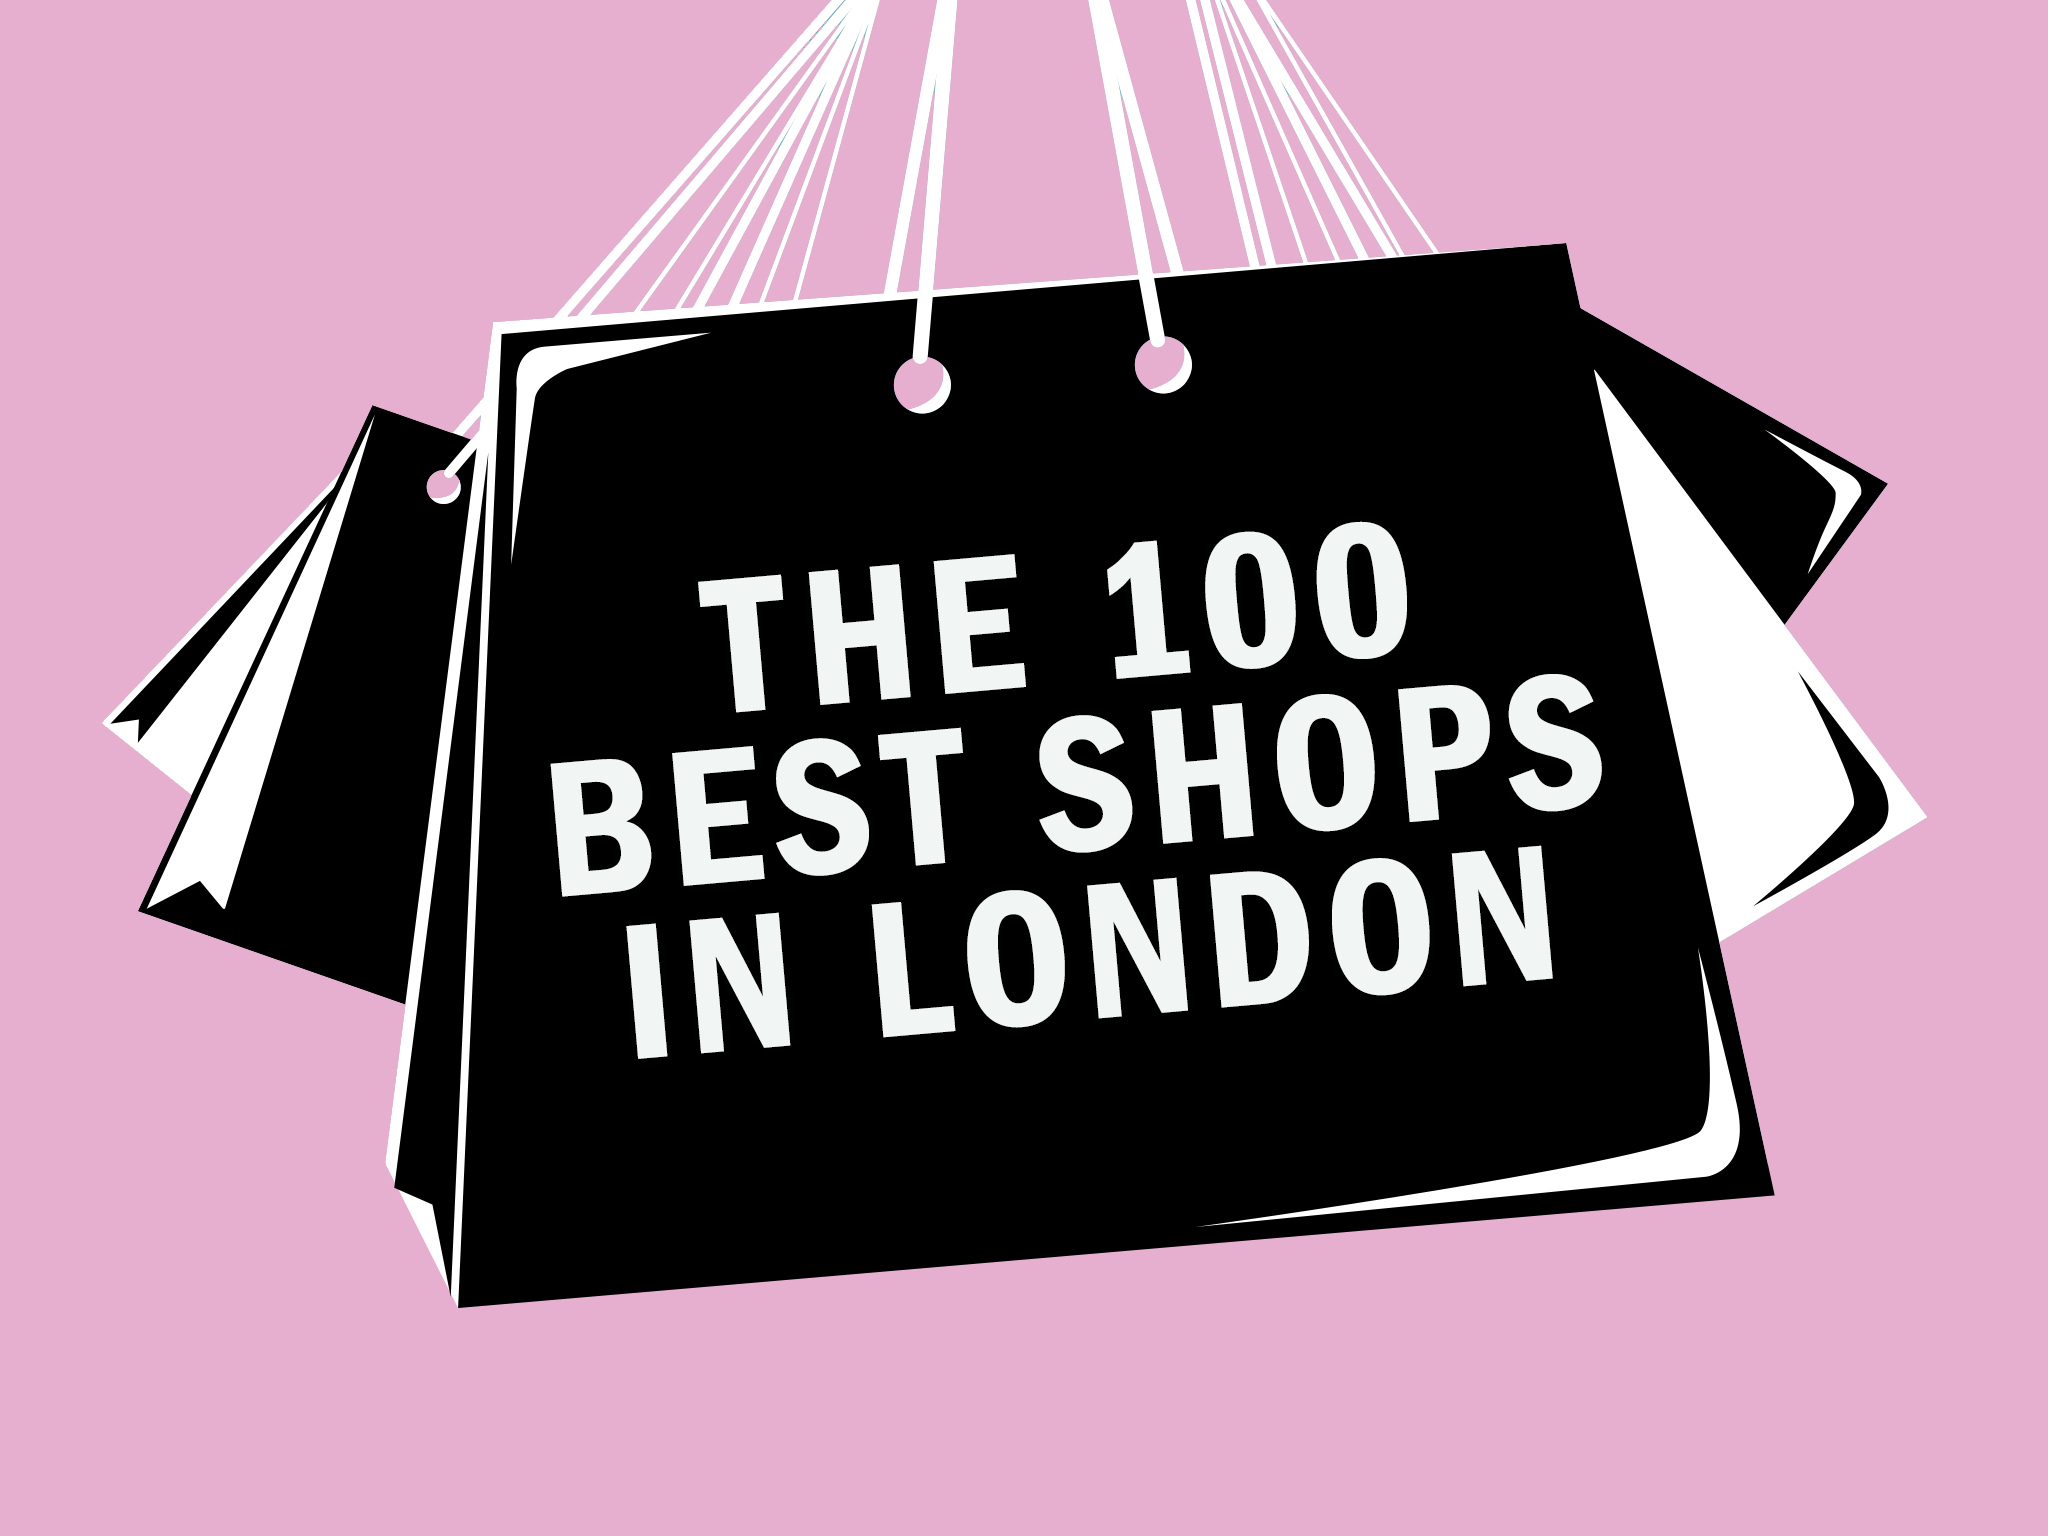 The 100 best shops in London